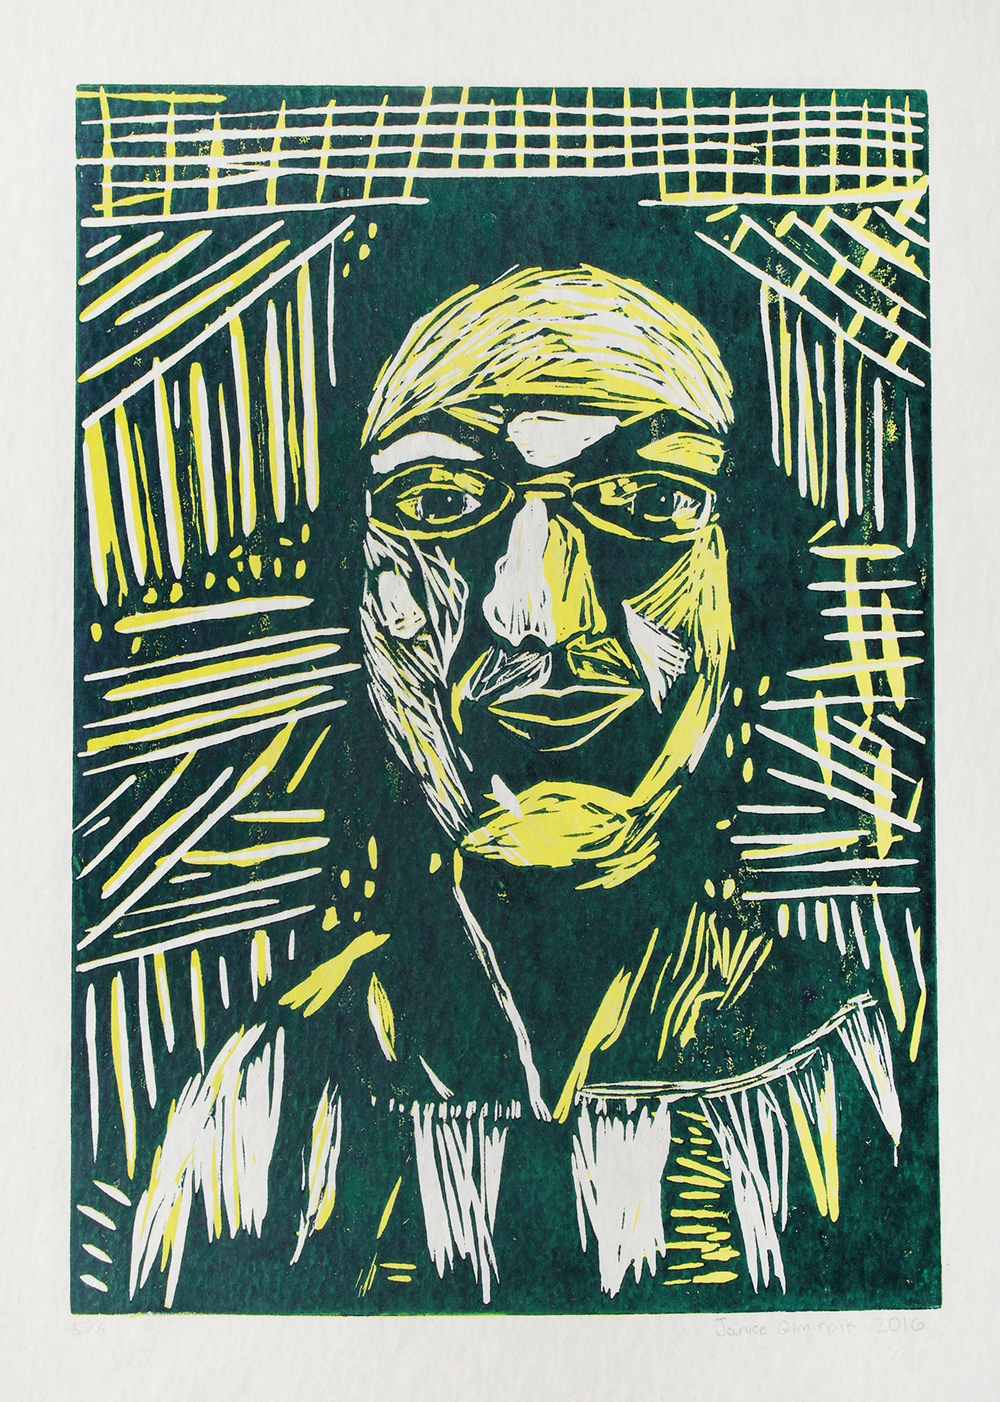 Uvanga: Self-Portrait   Janice Qimirpik  Two-Layer Linocut Print on Washi  15.5 x 21.5""